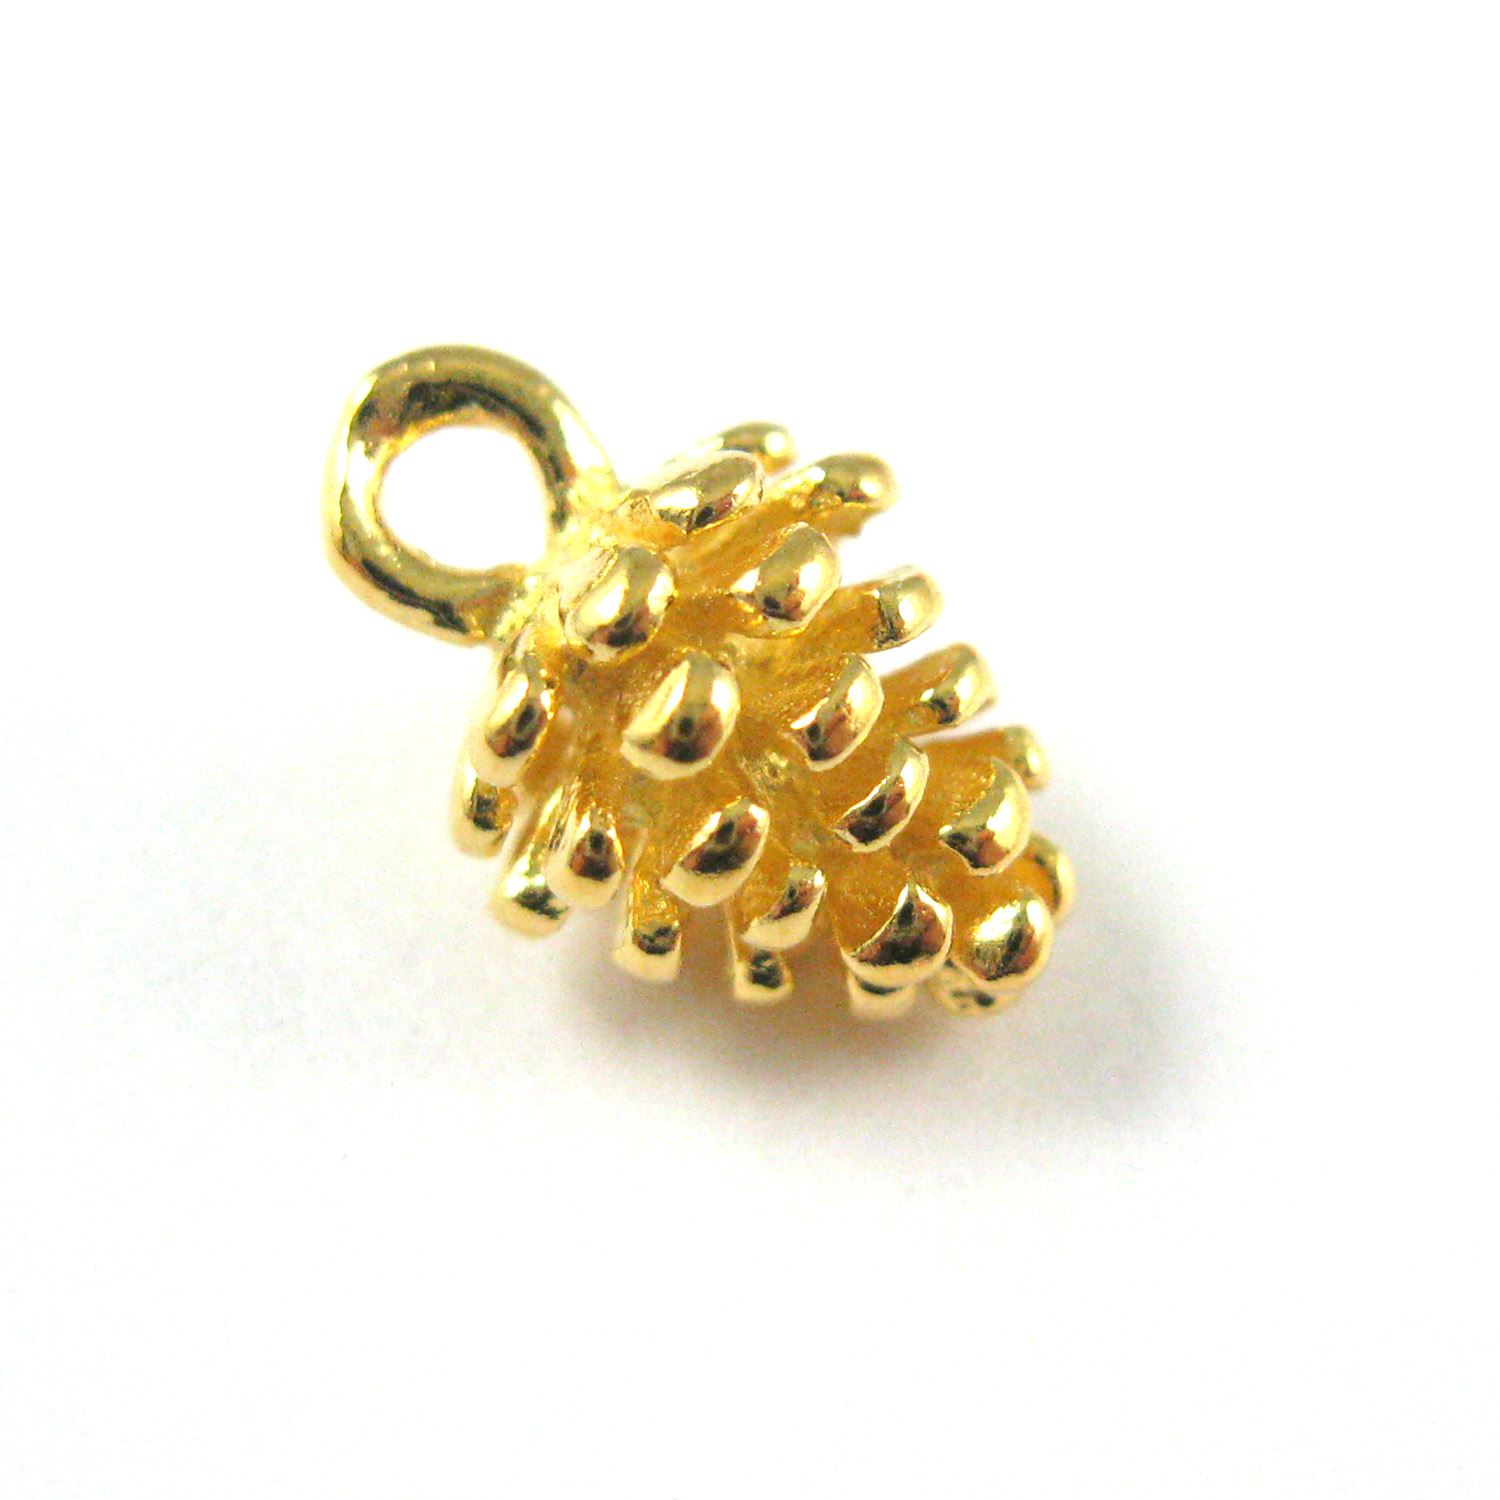 22K Gold plated 925 Sterling Silver Charm -Pine Cone Charm - Tiny Vermeil Pinecone Pendant - 11mm ( 2 pcs )